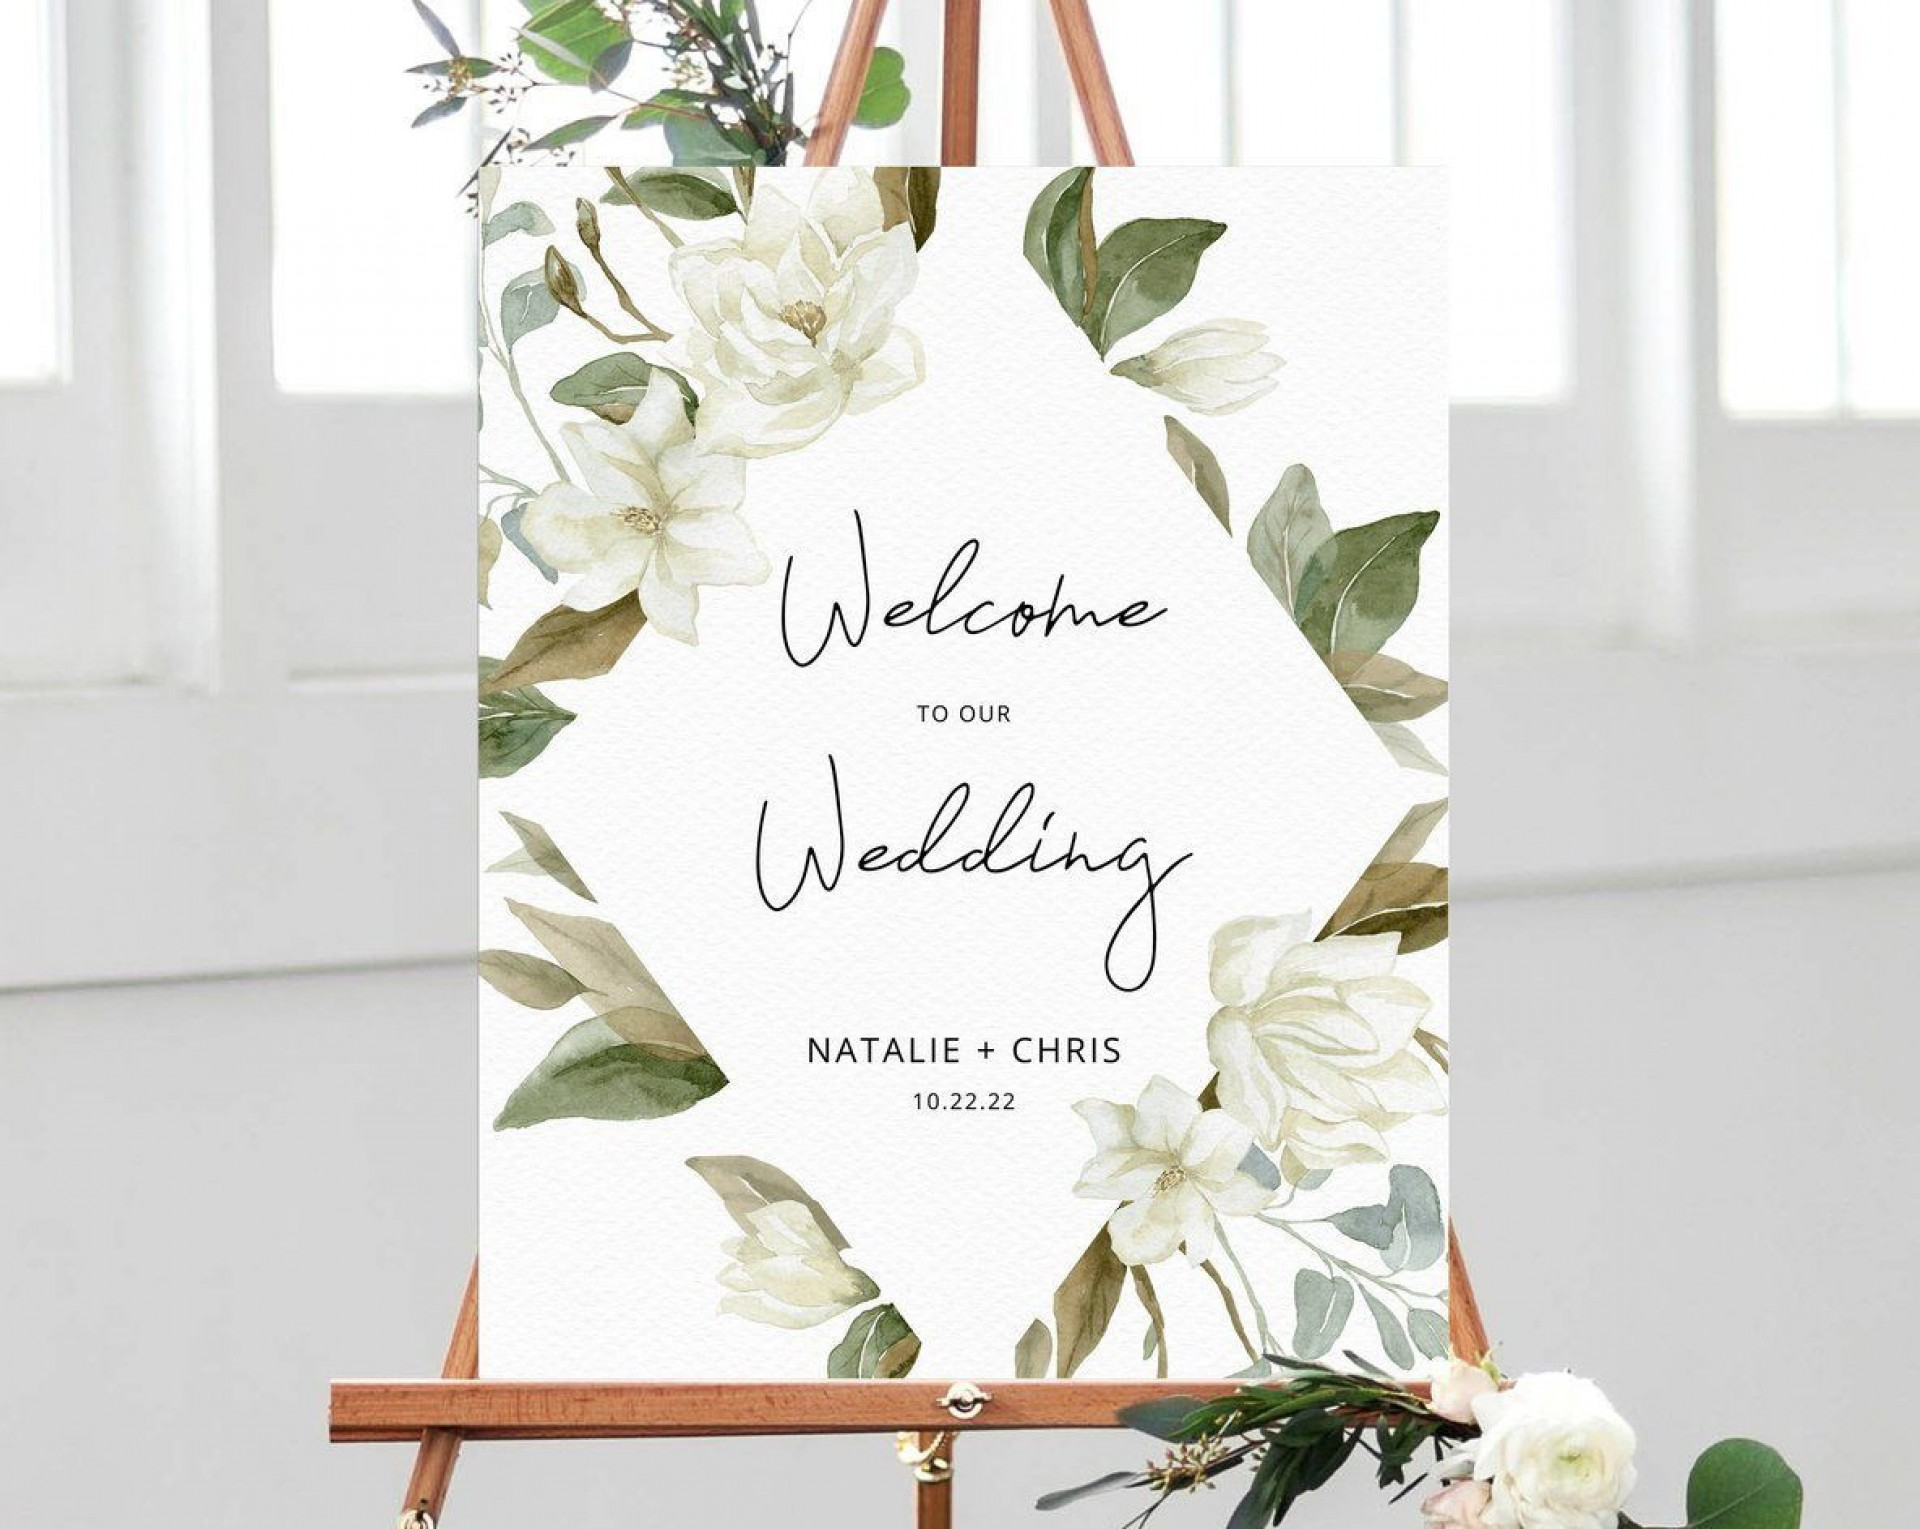 002 Unforgettable Wedding Welcome Sign Printable Template Inspiration  Free1920